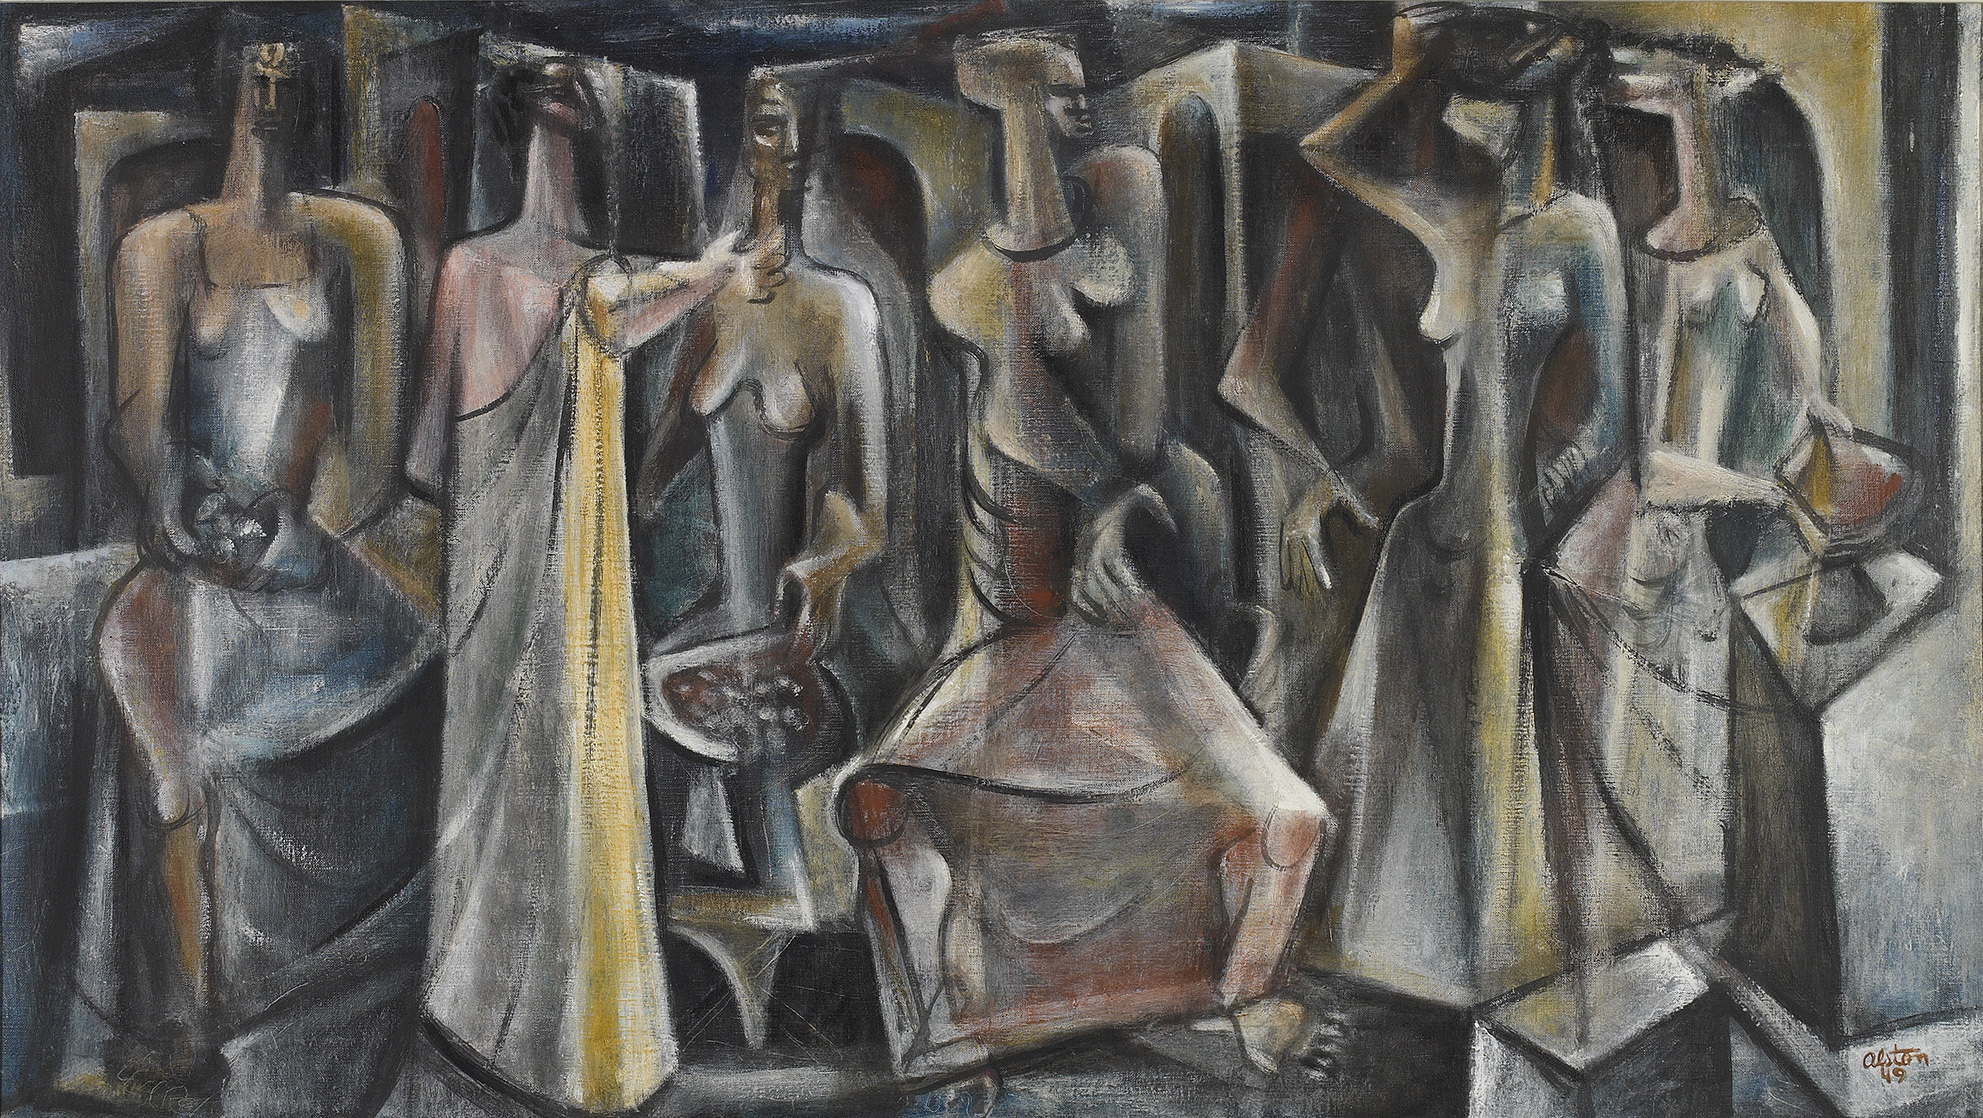 SOLD  Untitled (Seven Figures), 1949  , oil on canvas, 20 x 36 inches